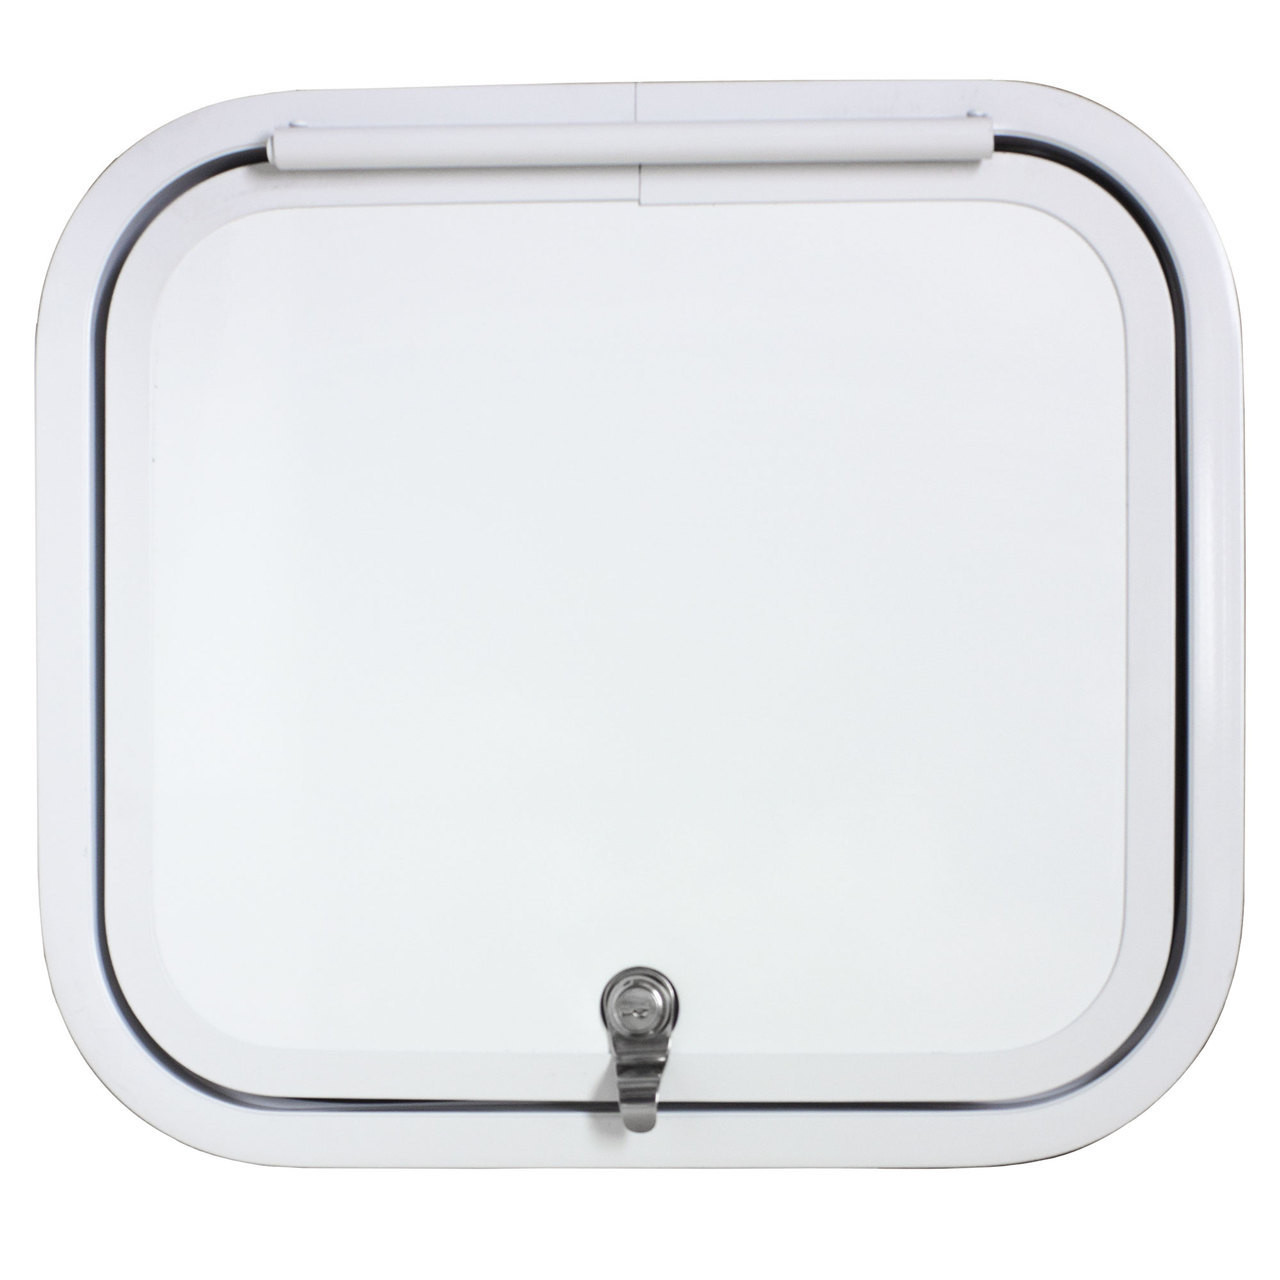 Rounded RV Baggage Door  sc 1 st  RecPro & Rounded RV Baggage Door - RecPro